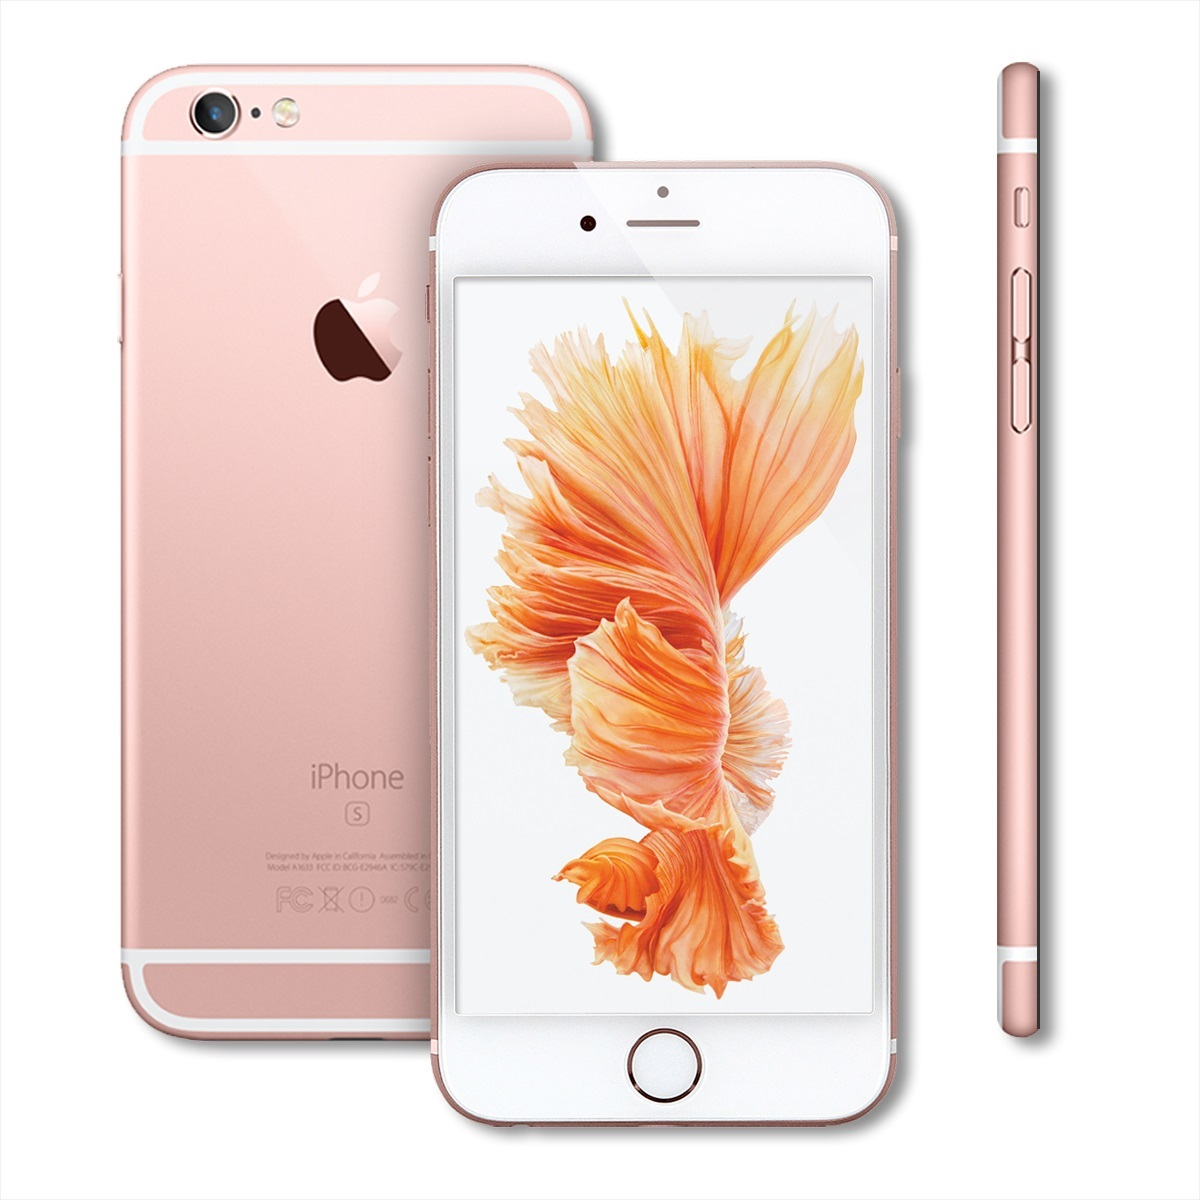 gold iphone 6s apple iphone 6s 32gb smartphone unlocked a1688 sprint t 2105